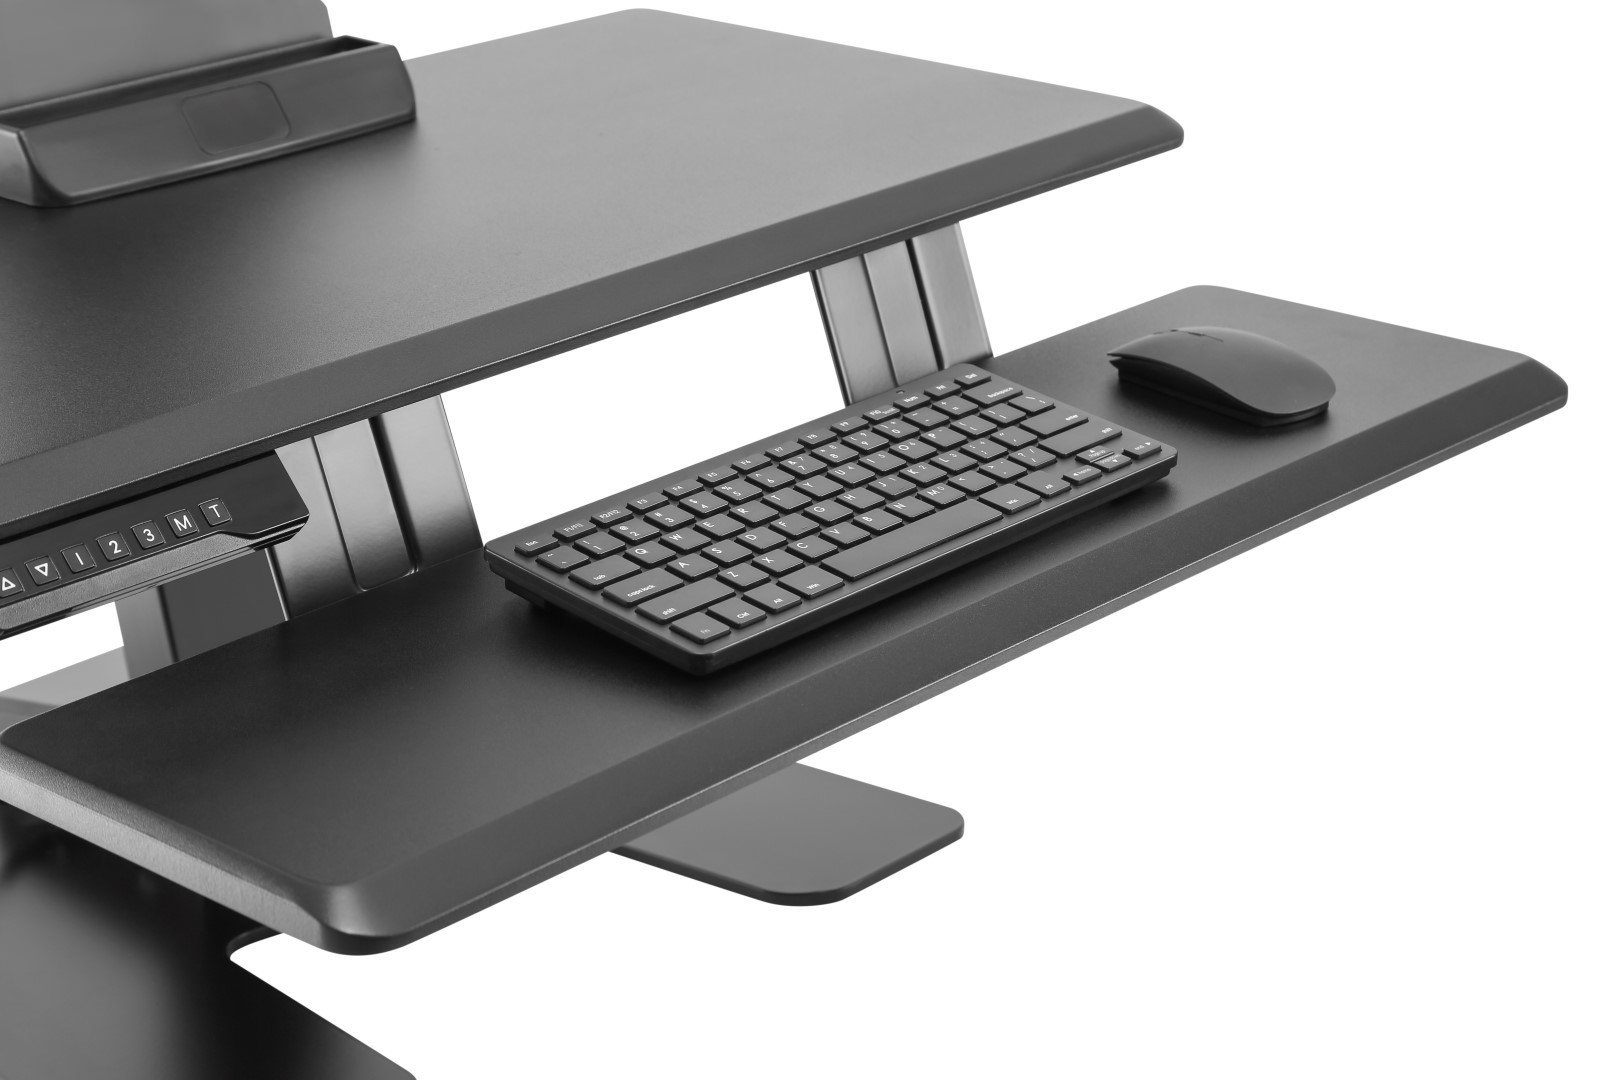 E-Lift keyboard tray with keyboard and mouse